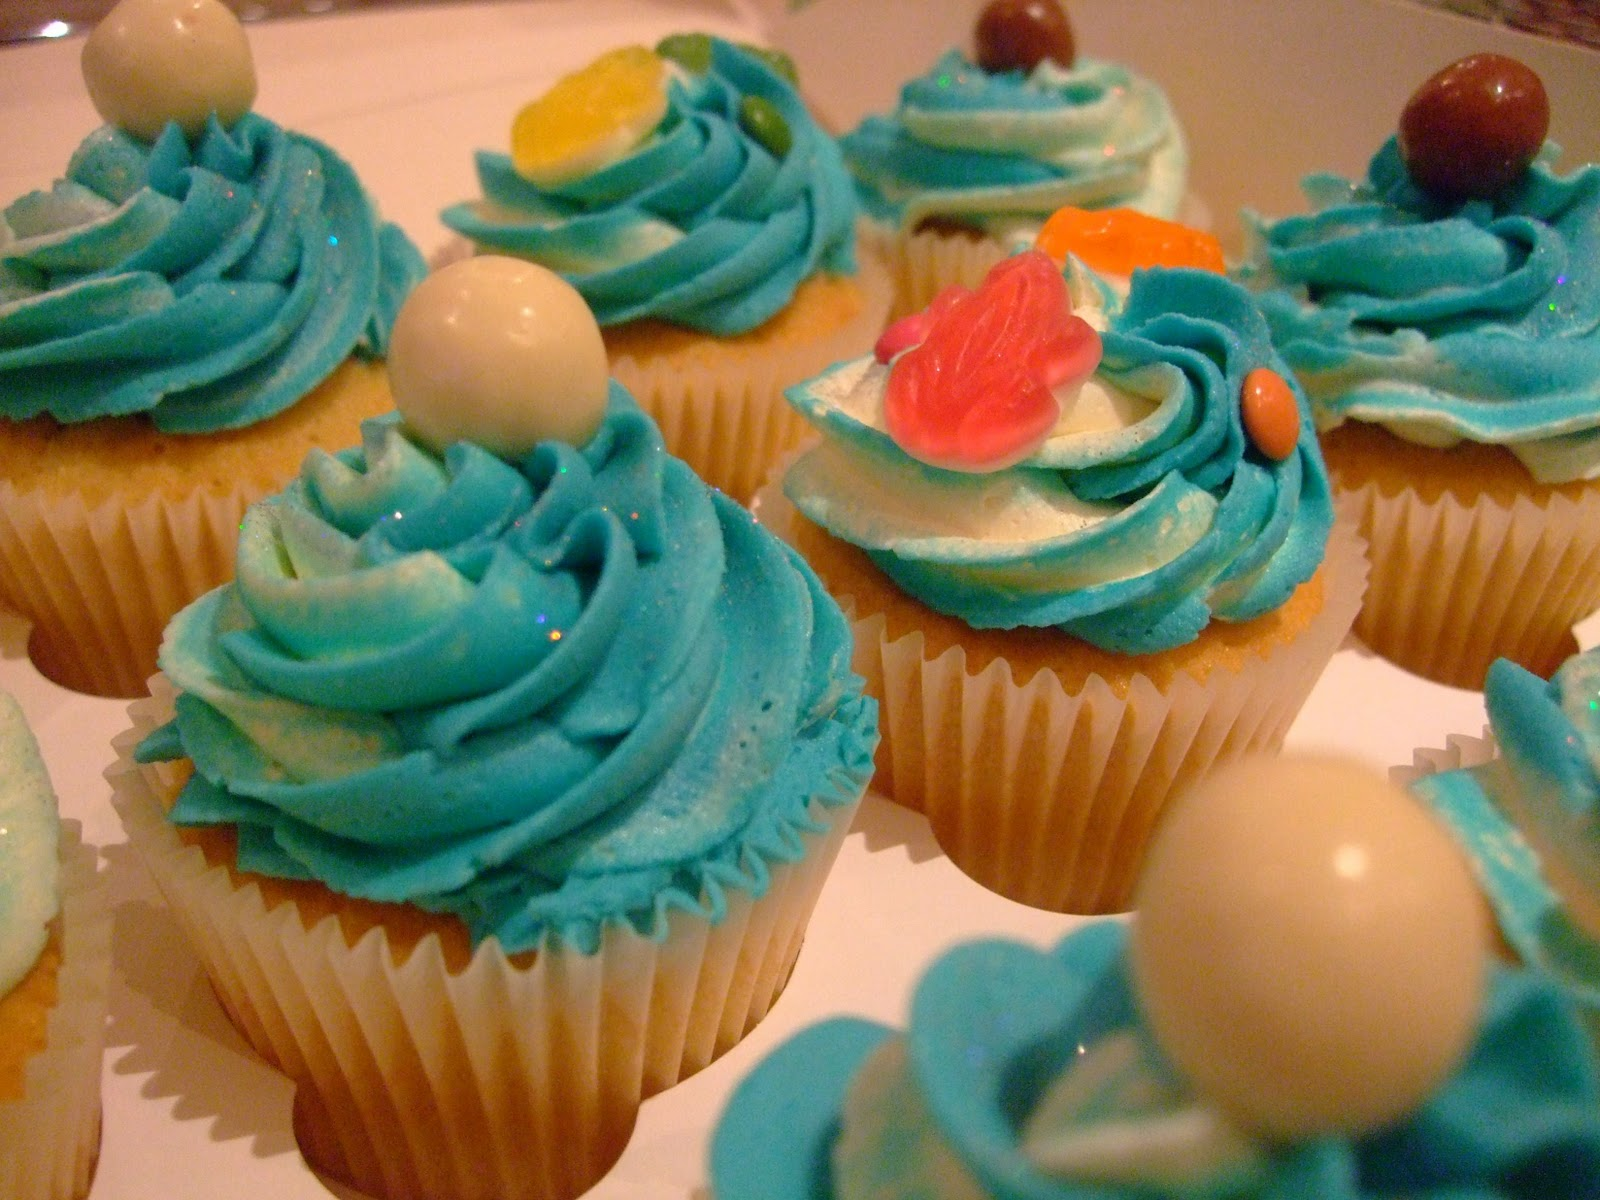 Cute Cupcakes For Boys Birthday http://colourfulcupcakes-newbury.blogspot.com/2010/11/birthday-boy-blue-cupcakes.html